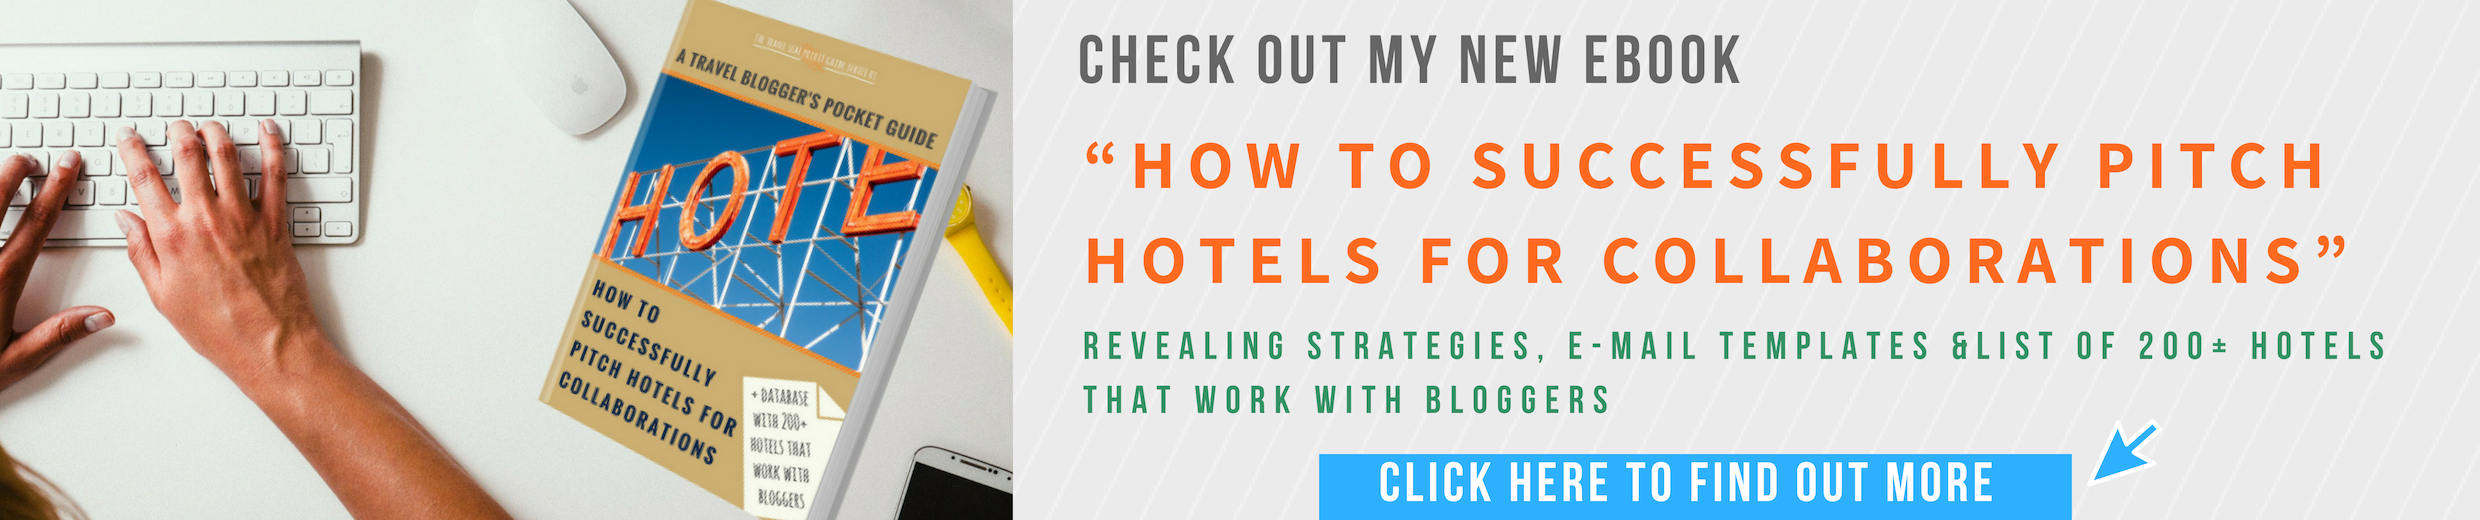 Get a complimentary hotel stay as a travel blogger: where to start?